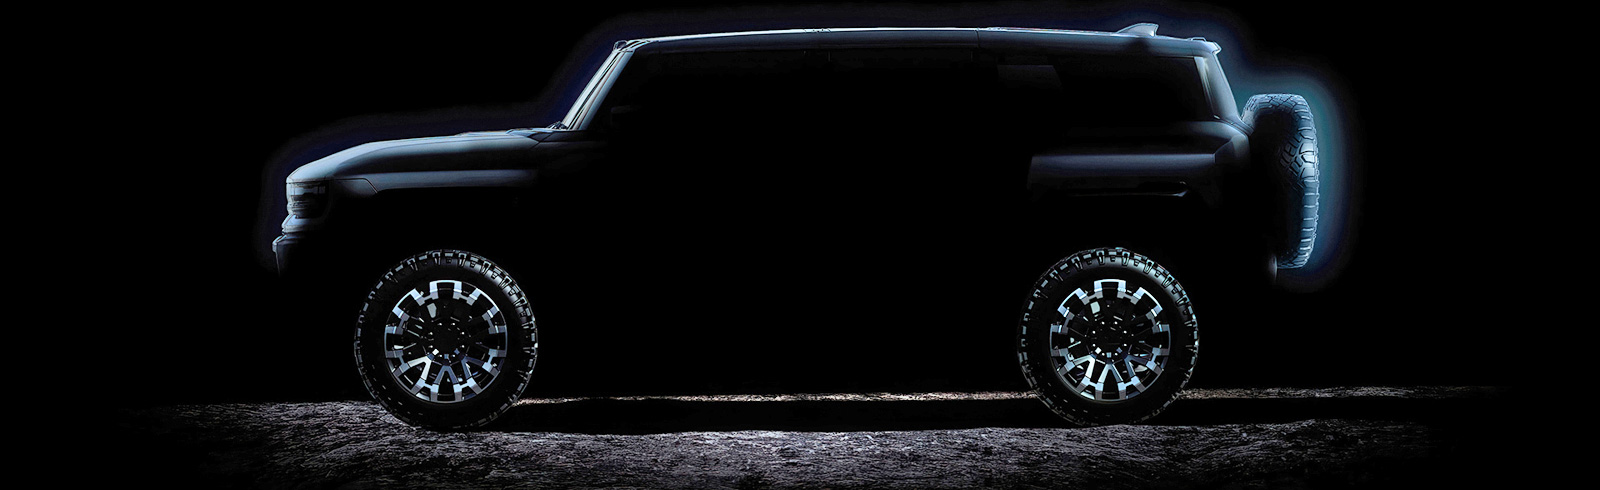 The Hummer EV is tested in sub-zero conditions, will be unveiled on April 3